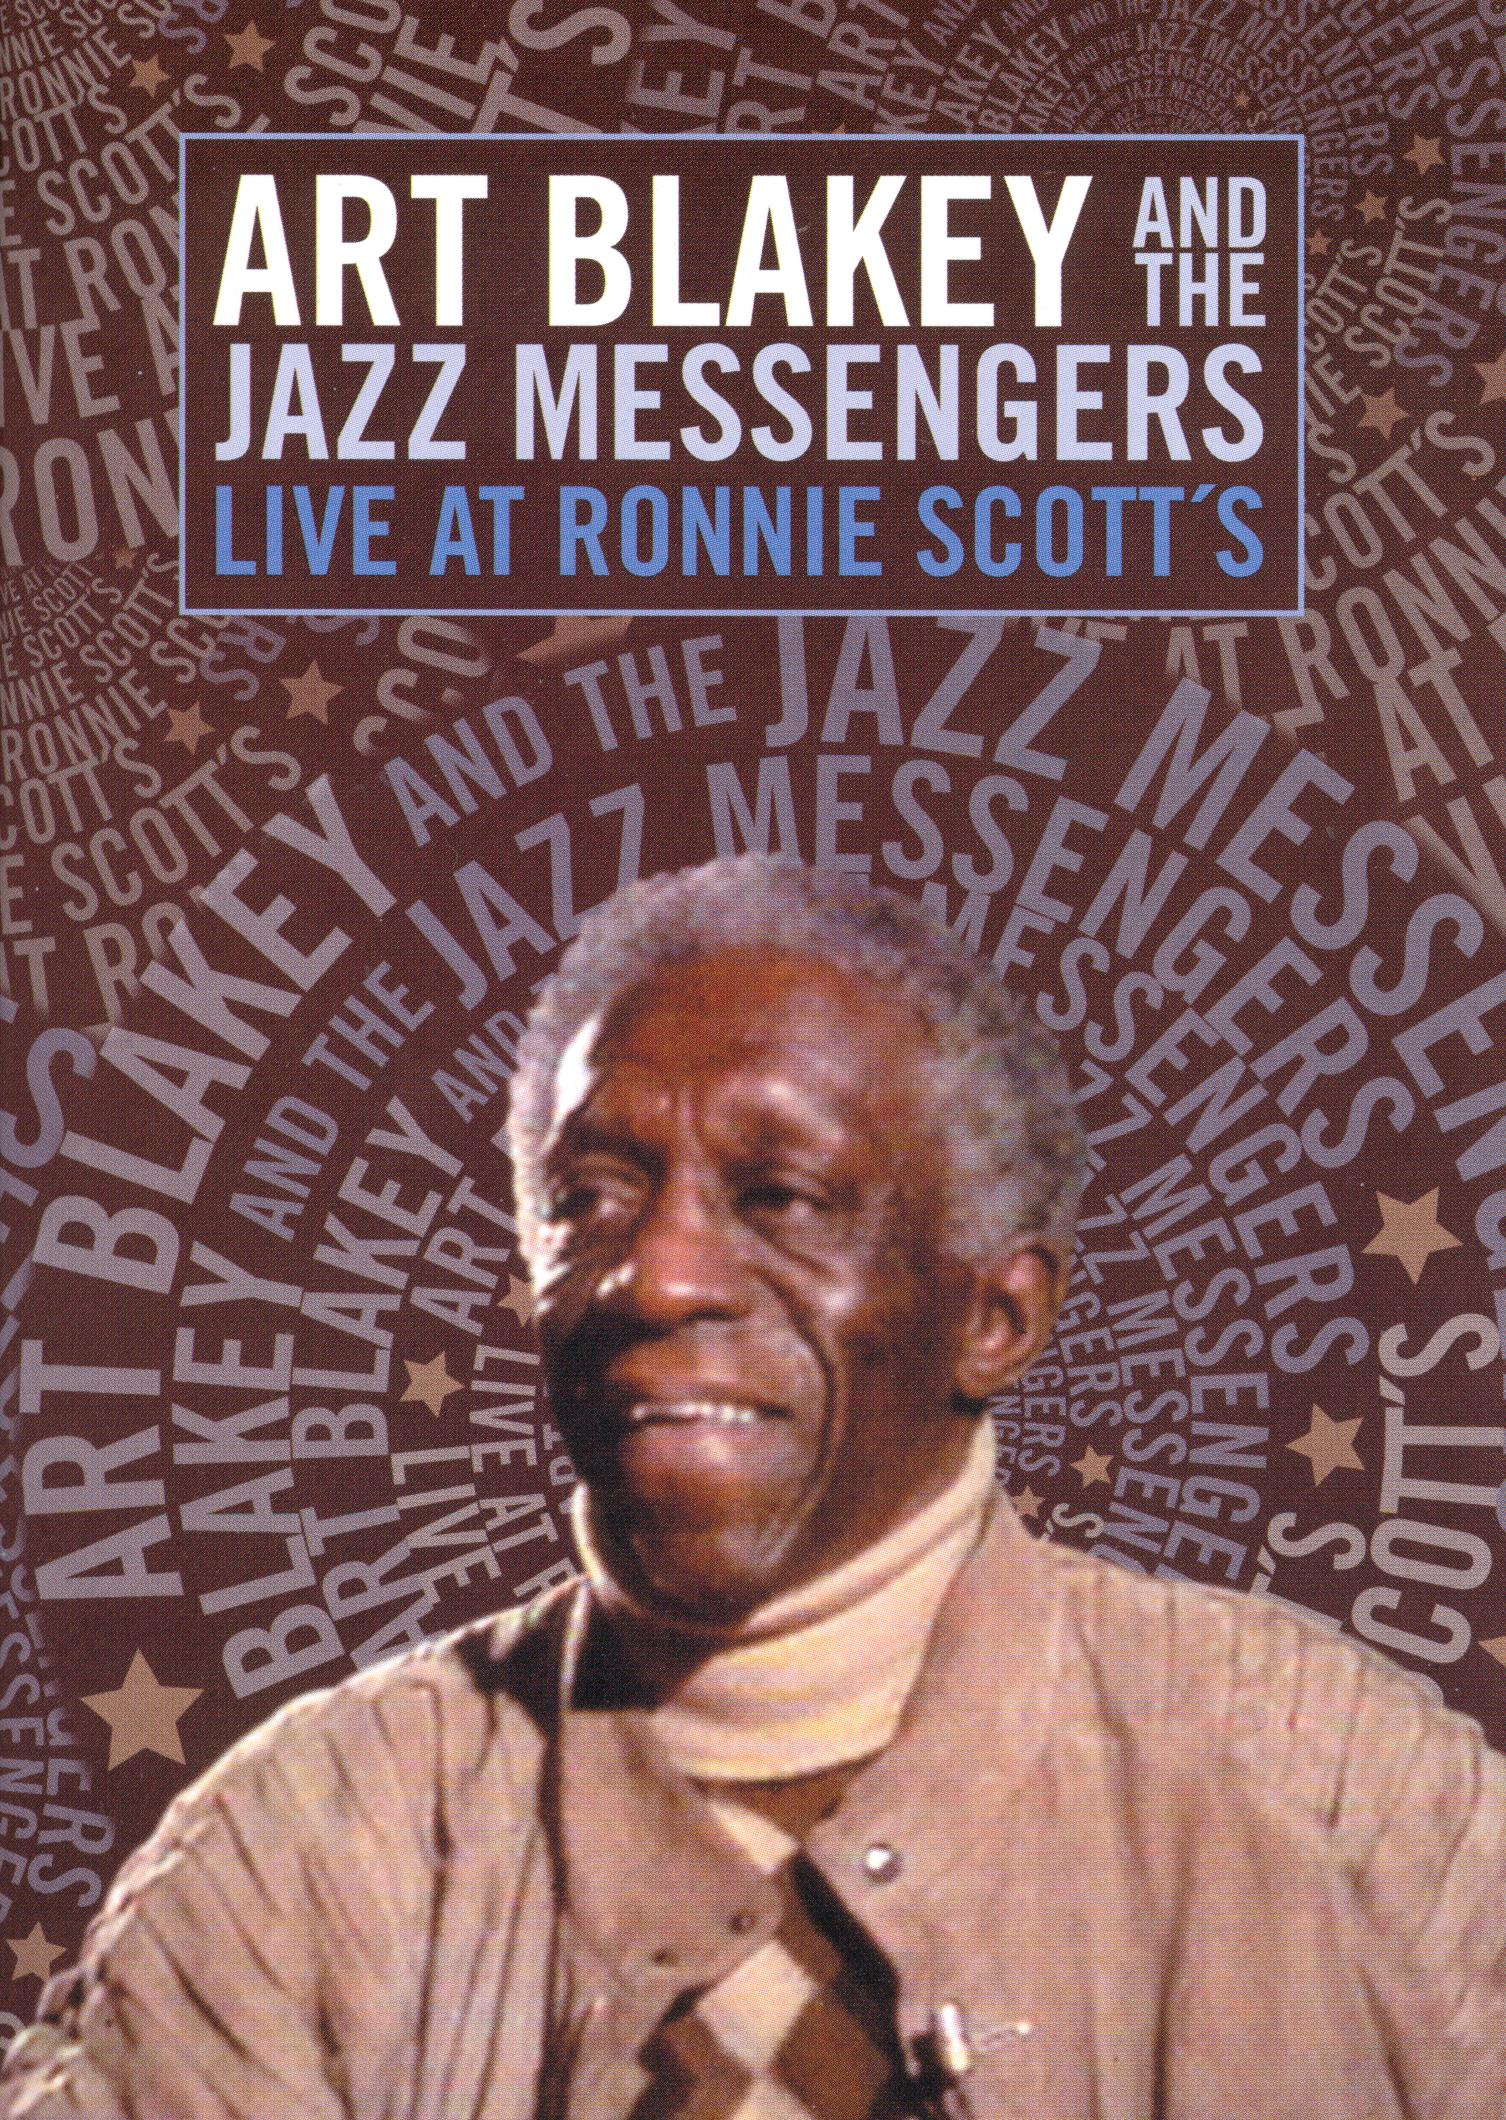 Art Blakey and the Jazz Messengers: Live at Ronnie Scott's